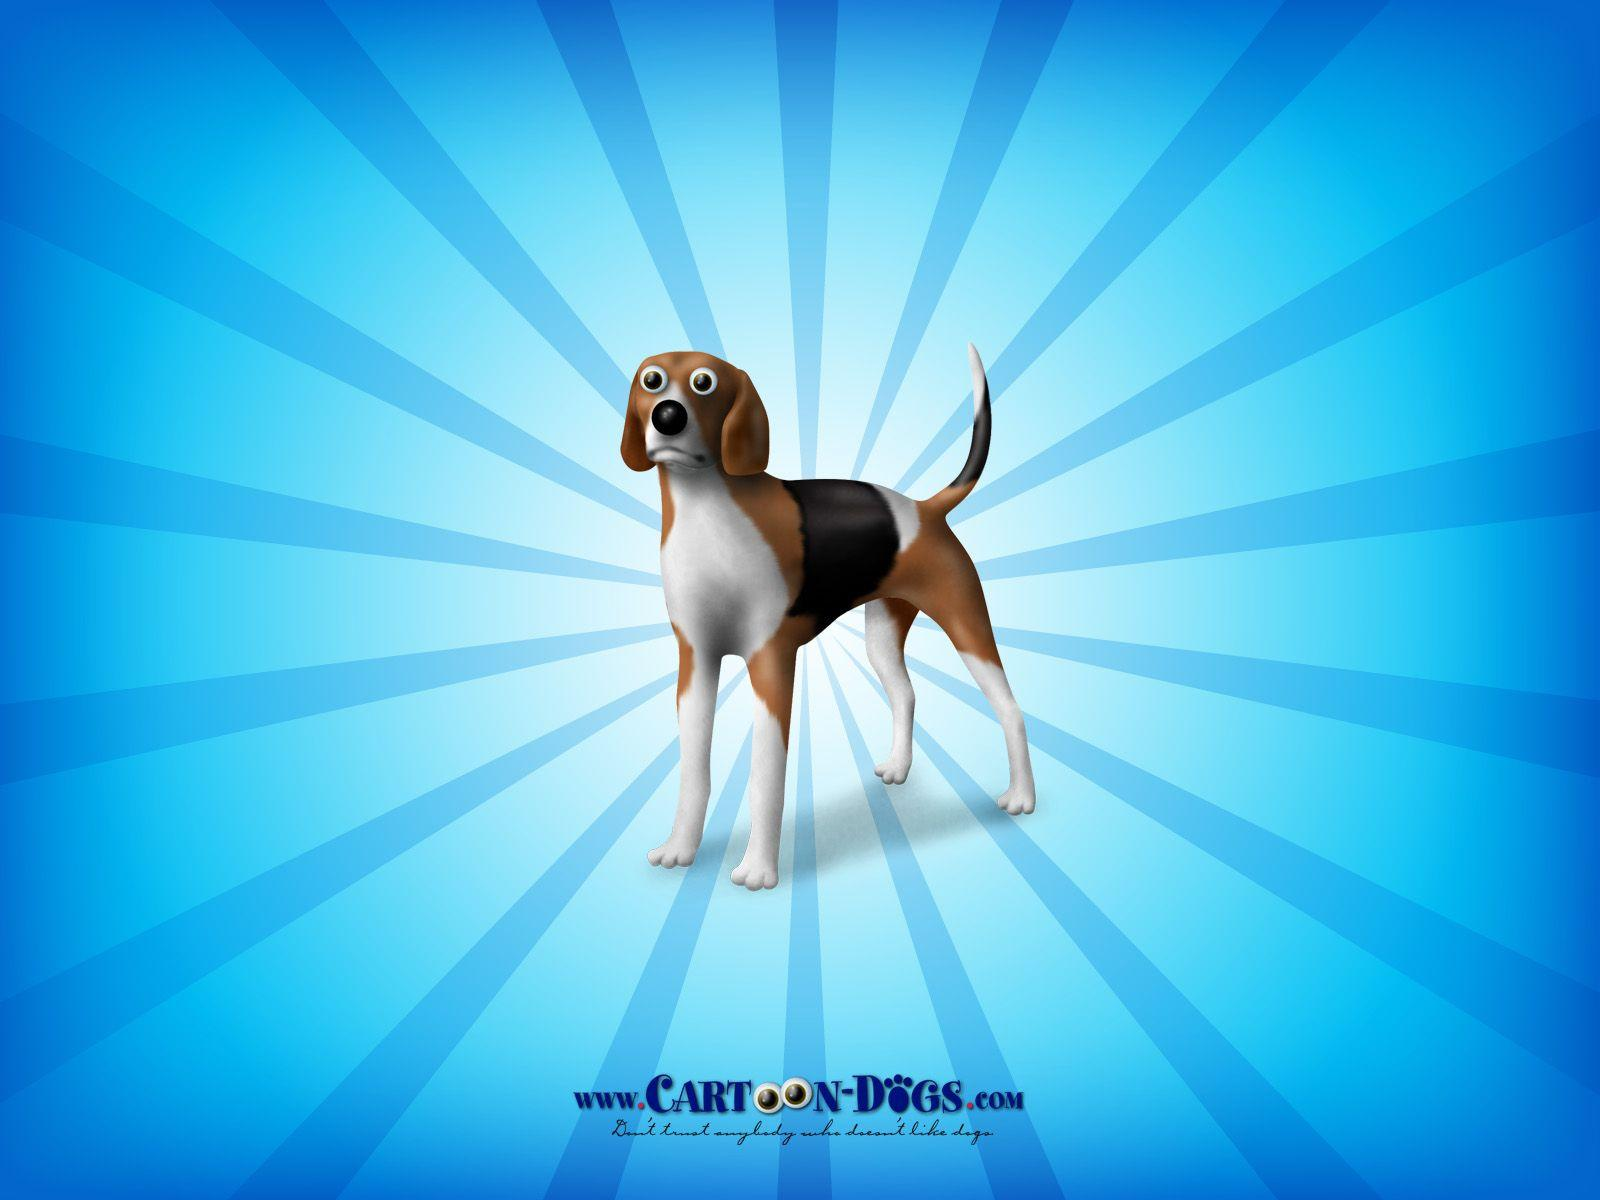 Cartoon Dogs image American Foxhound HD wallpapers and backgrounds